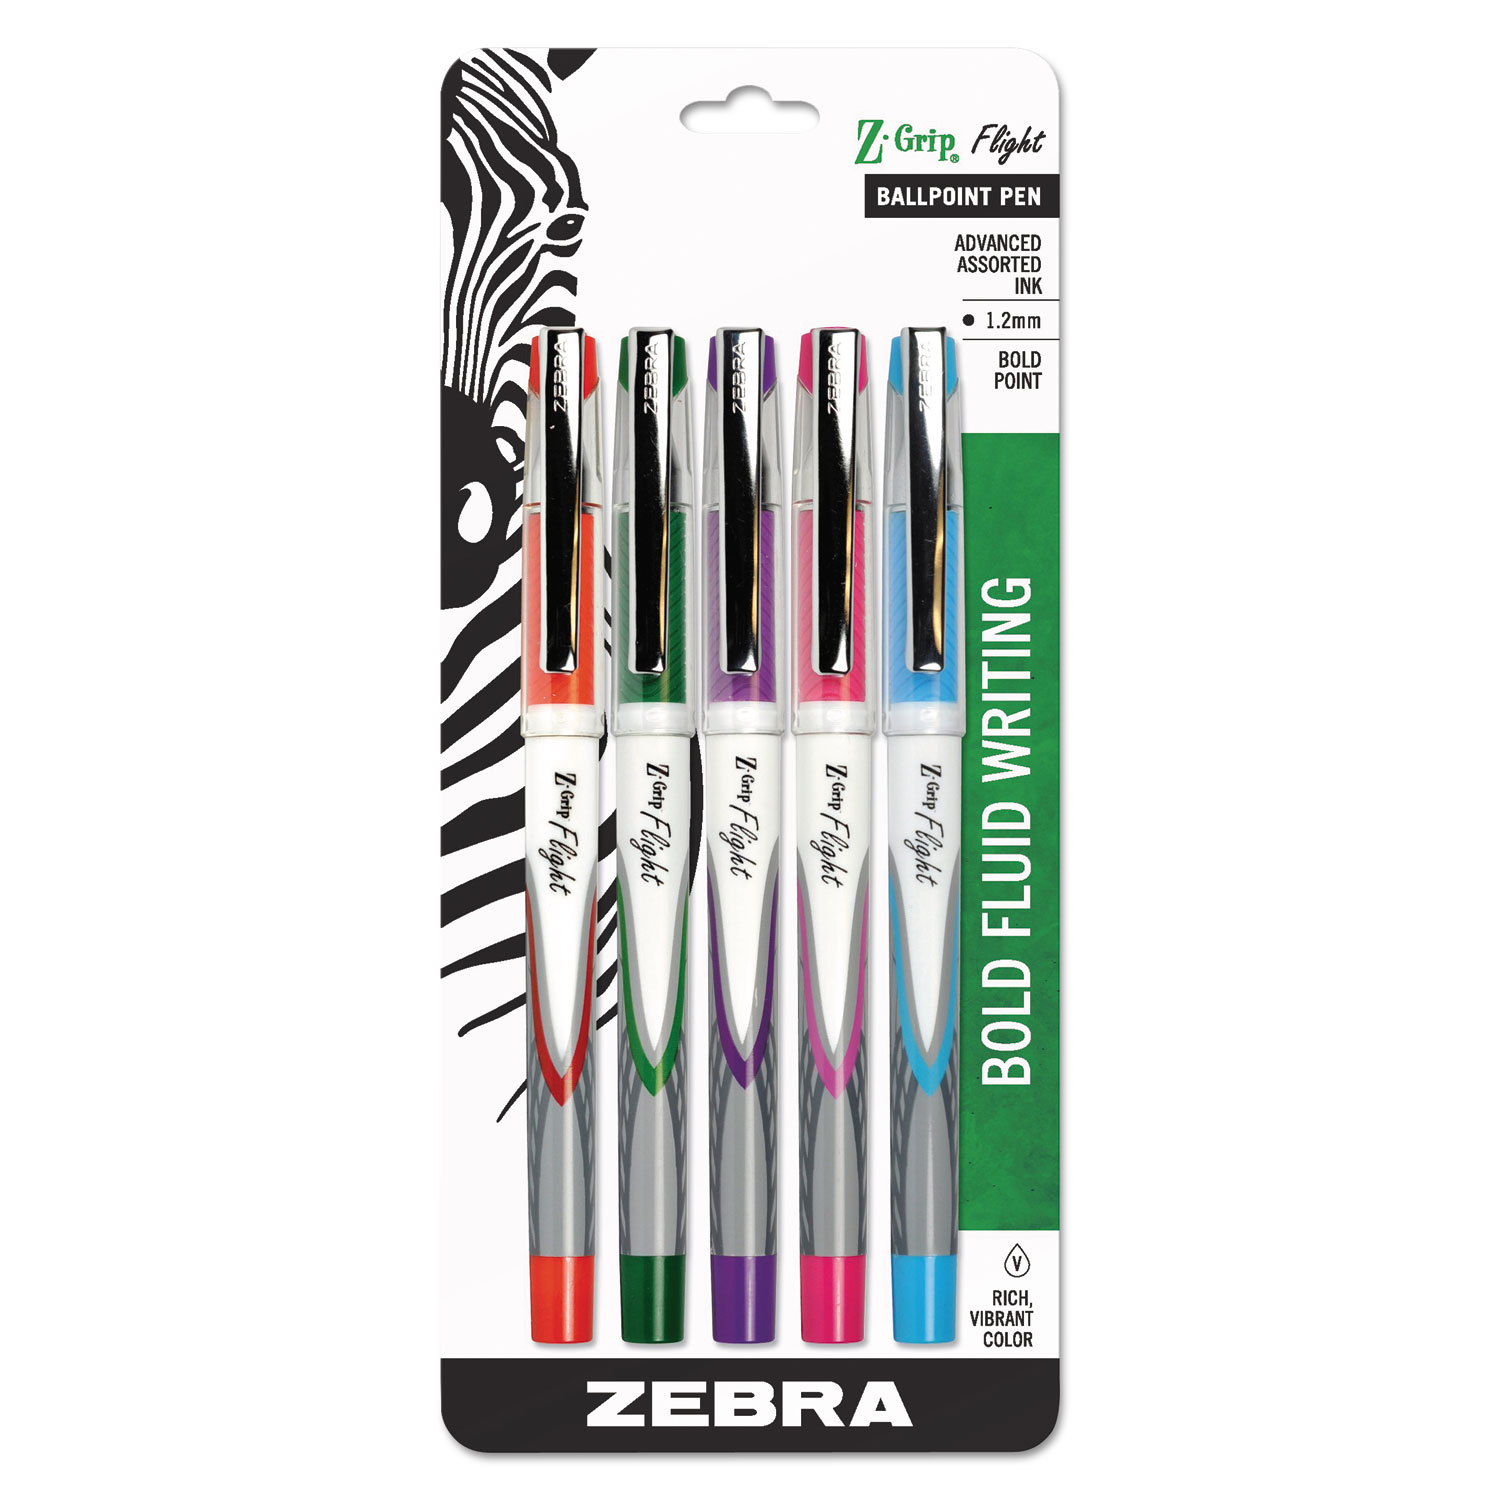 20 x Zebra Z-Grip Flight Ballpoint Retractable Pens Super Smooth Blue /& Black